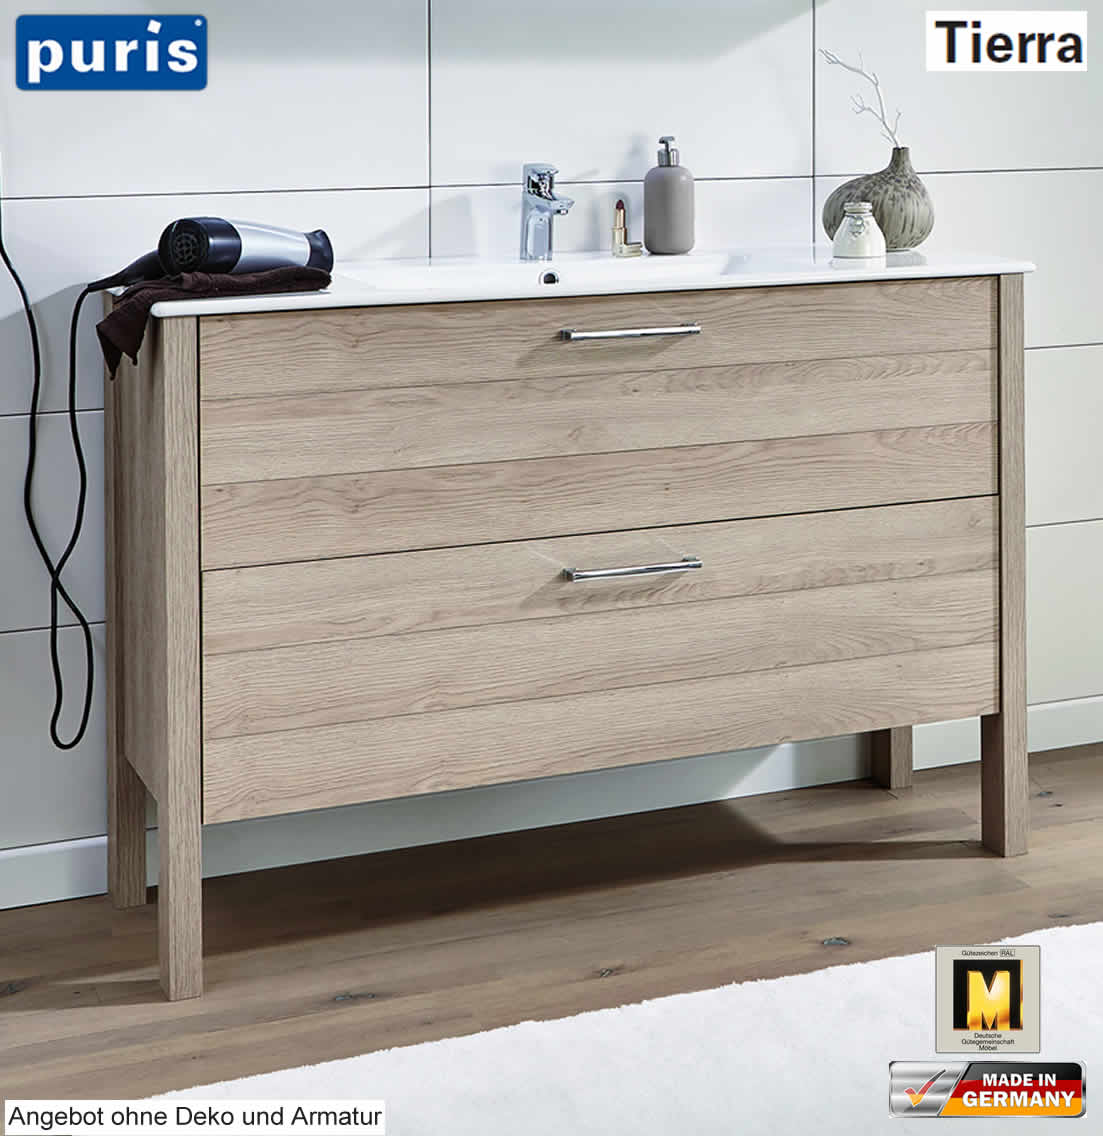 puris tierra waschtisch set 120 cm breite mit 2 ausz gen. Black Bedroom Furniture Sets. Home Design Ideas